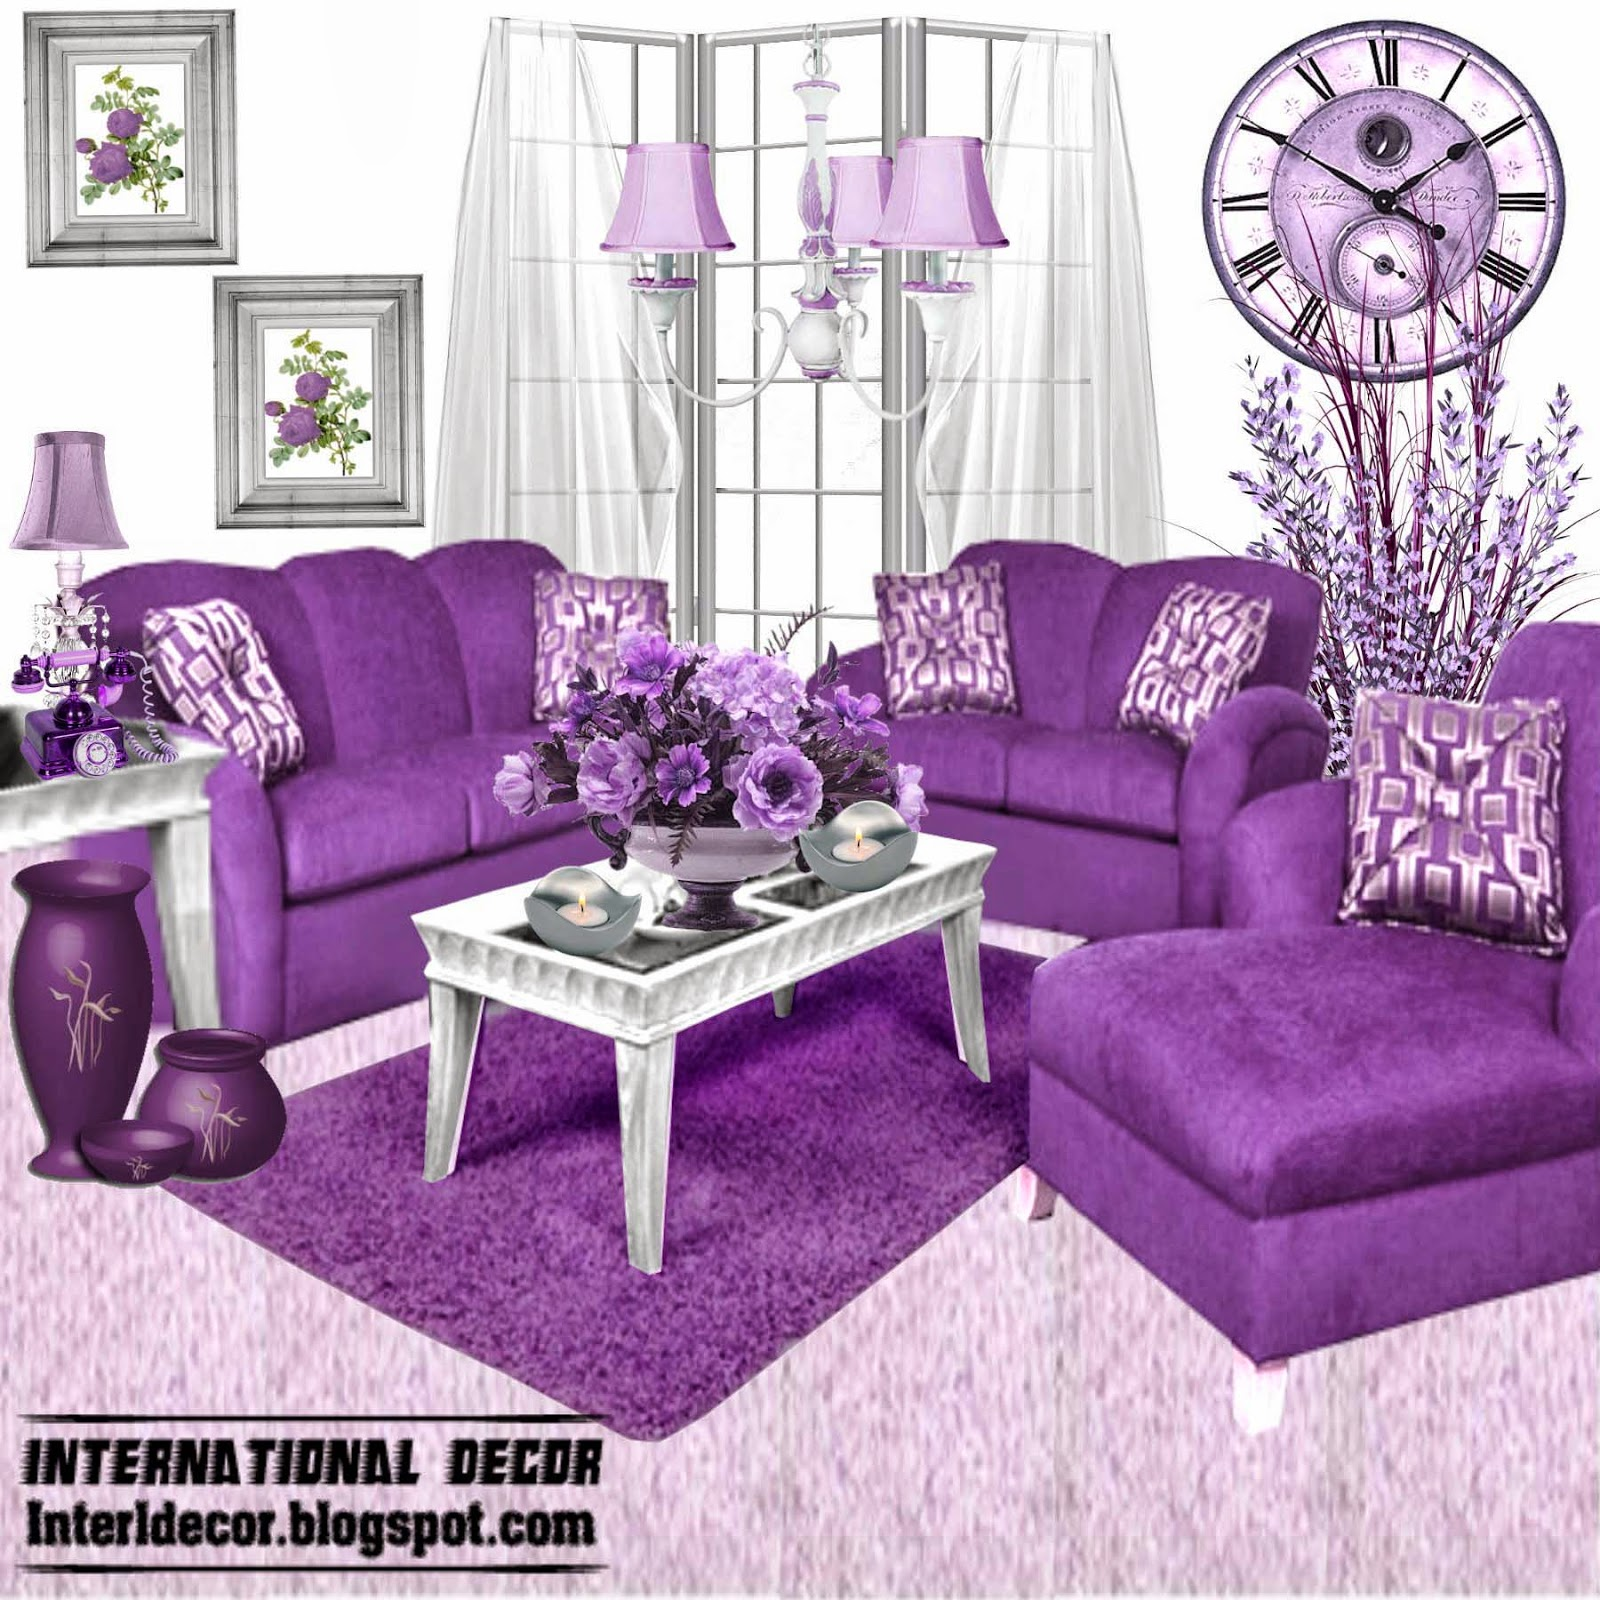 Luxury purple furniture sets sofas chairs for living for Living room furniture design